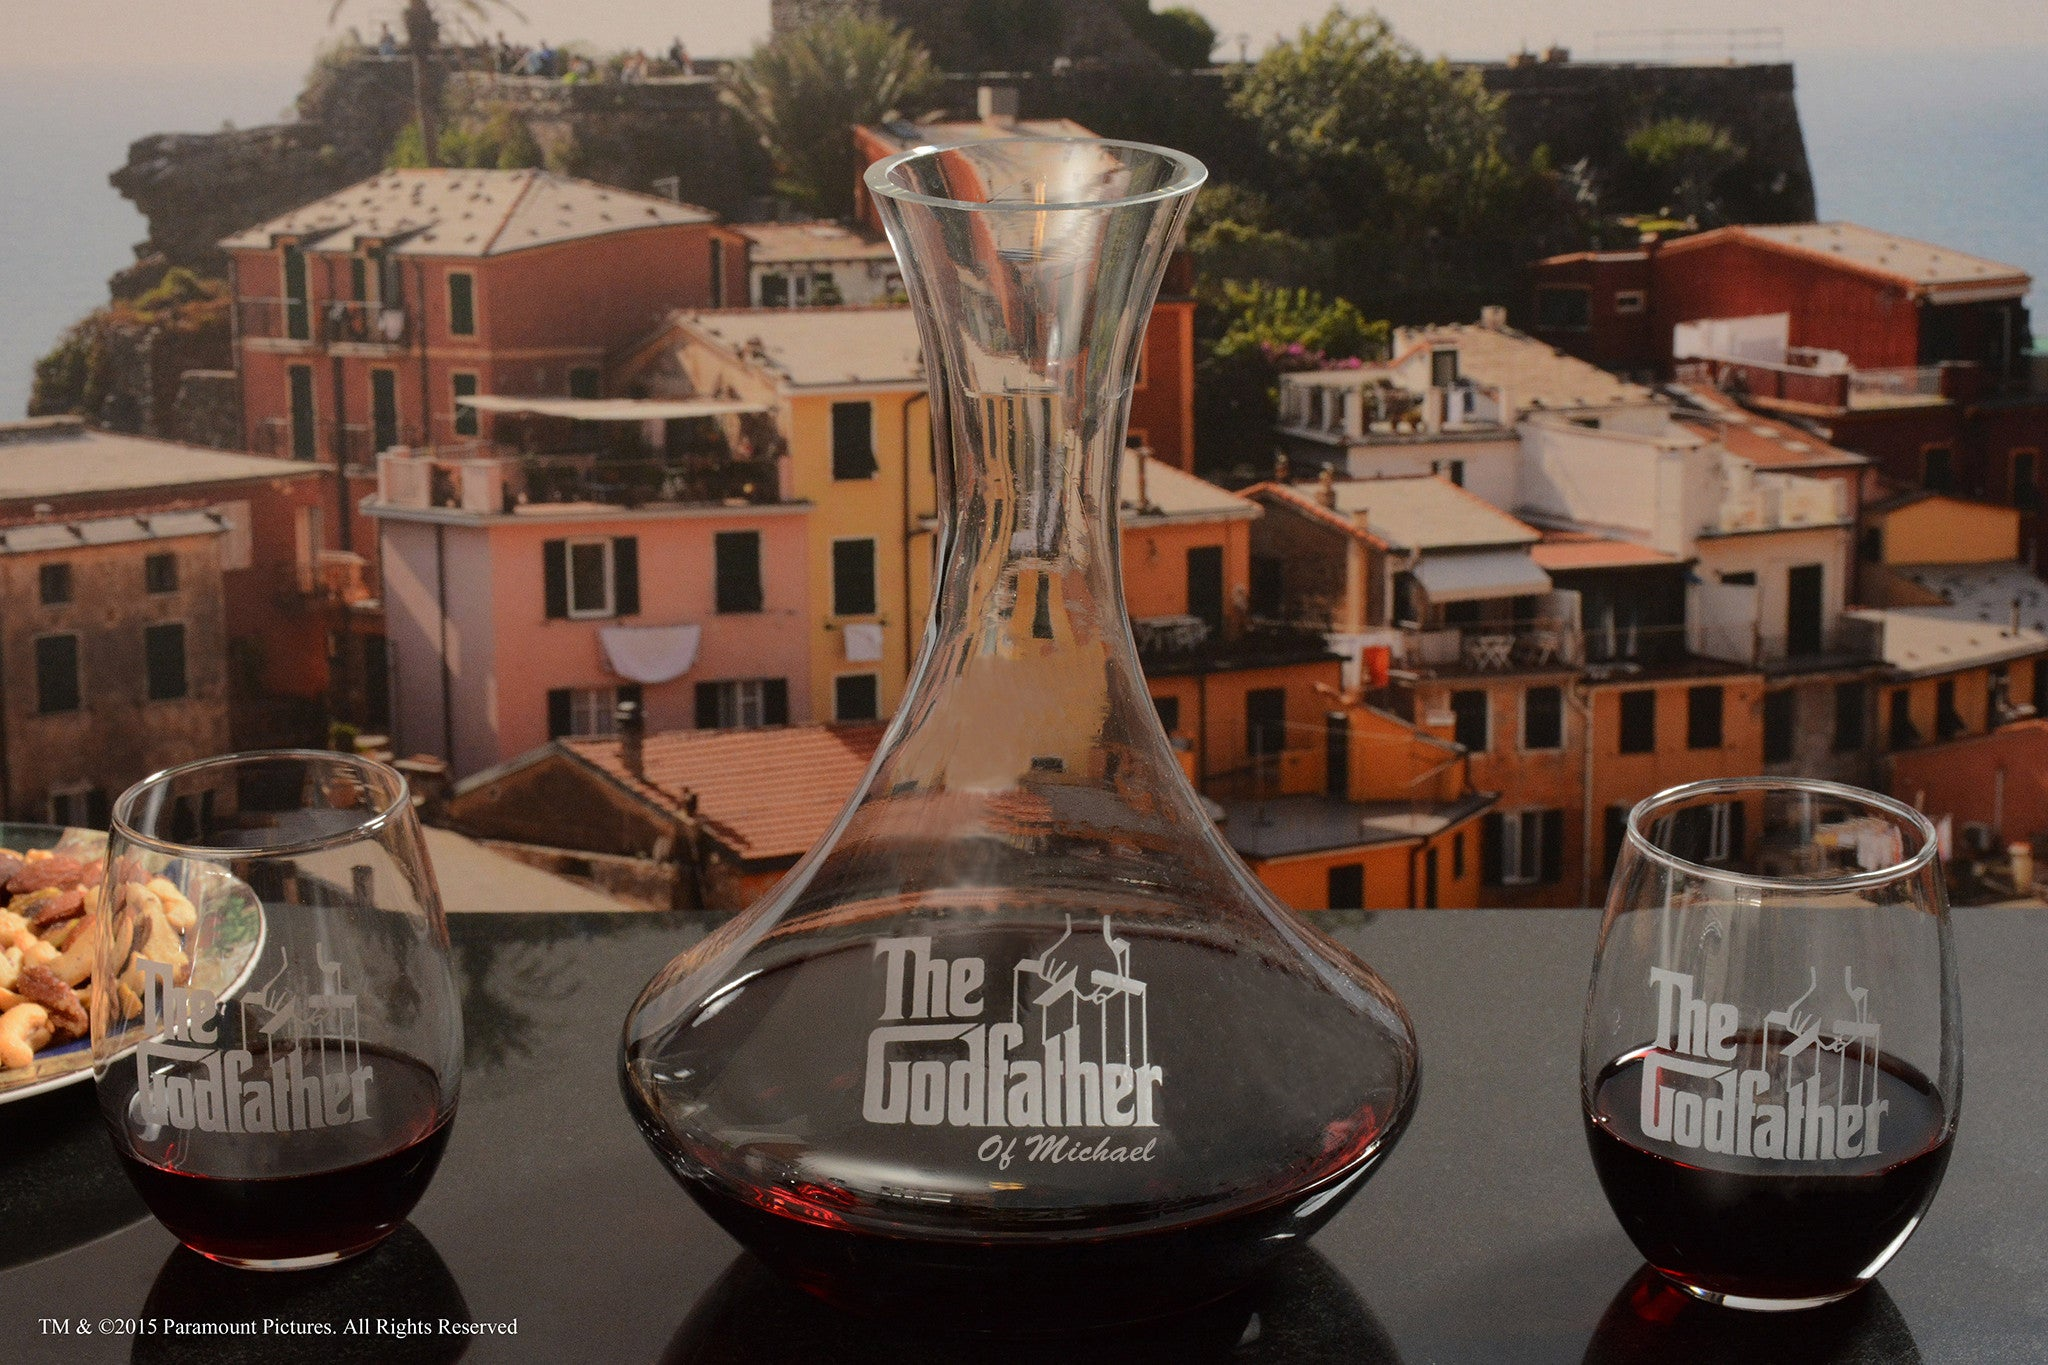 The Godfather Movie Decanter & Stemless Wine Glasses Set